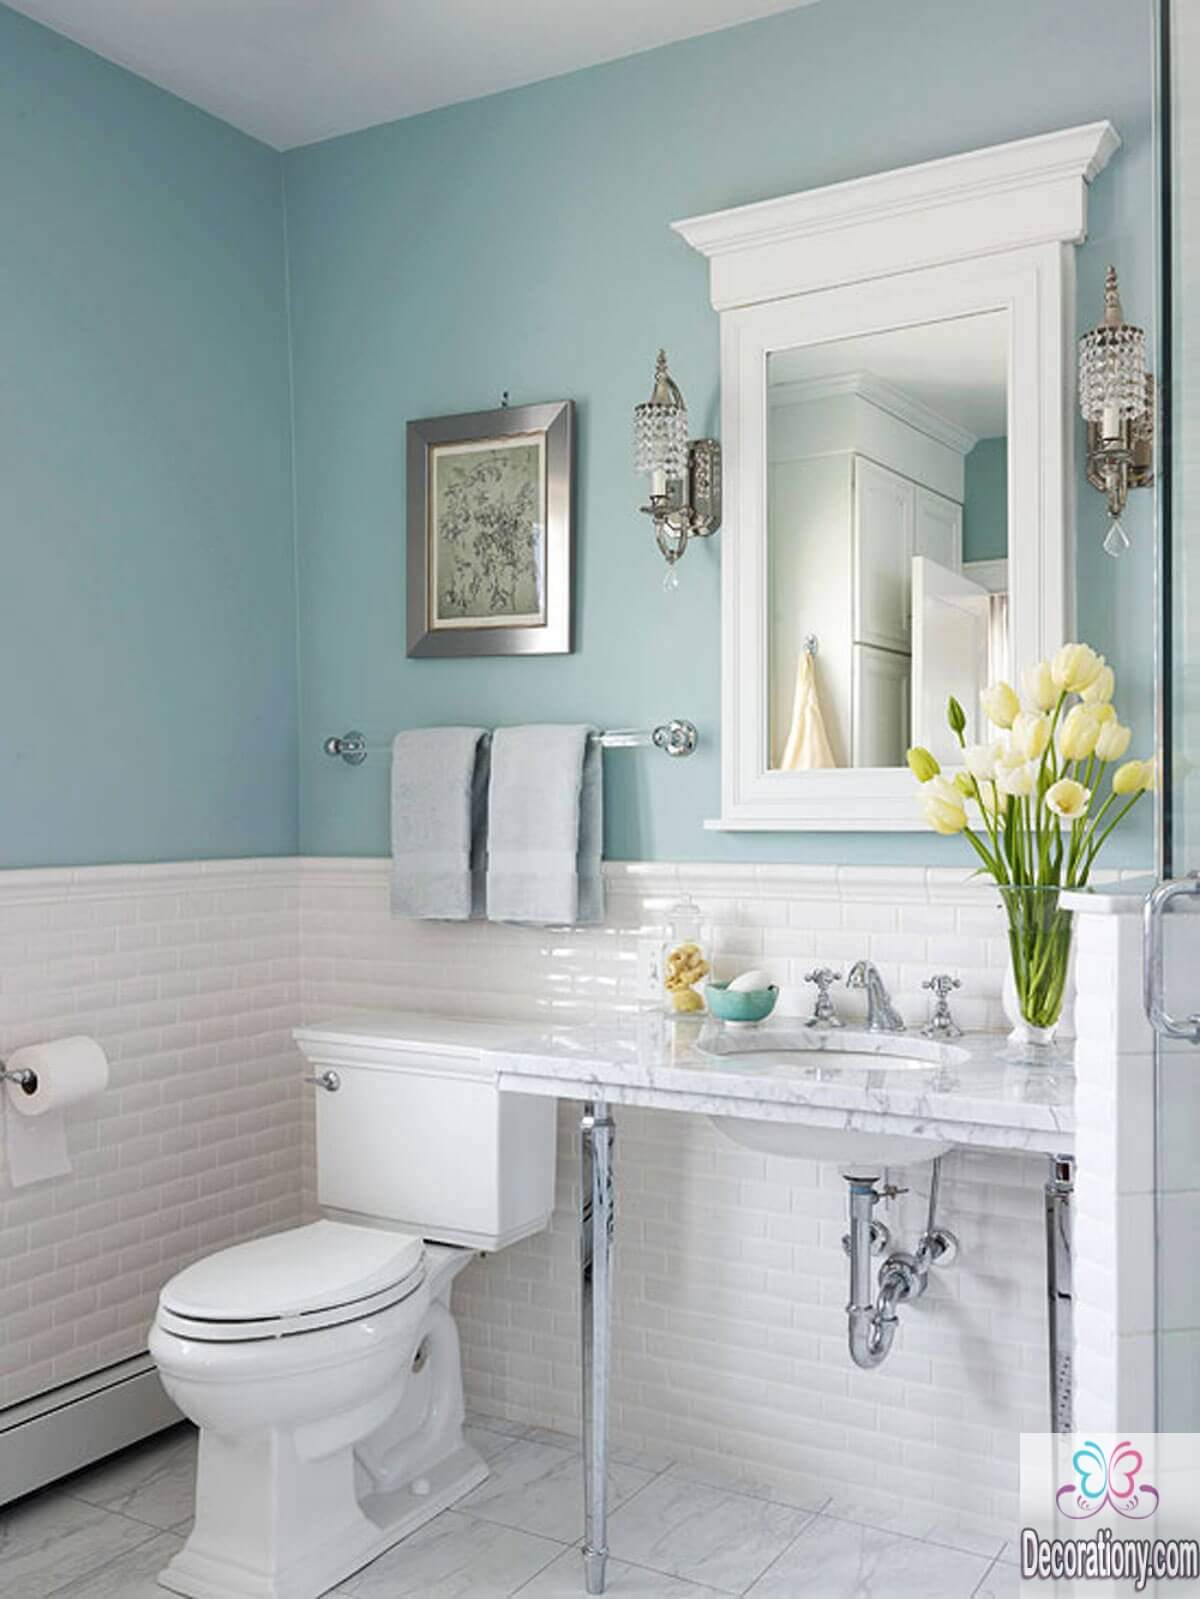 10 affordable colors for small bathrooms decoration y for Small bathroom layout with tub